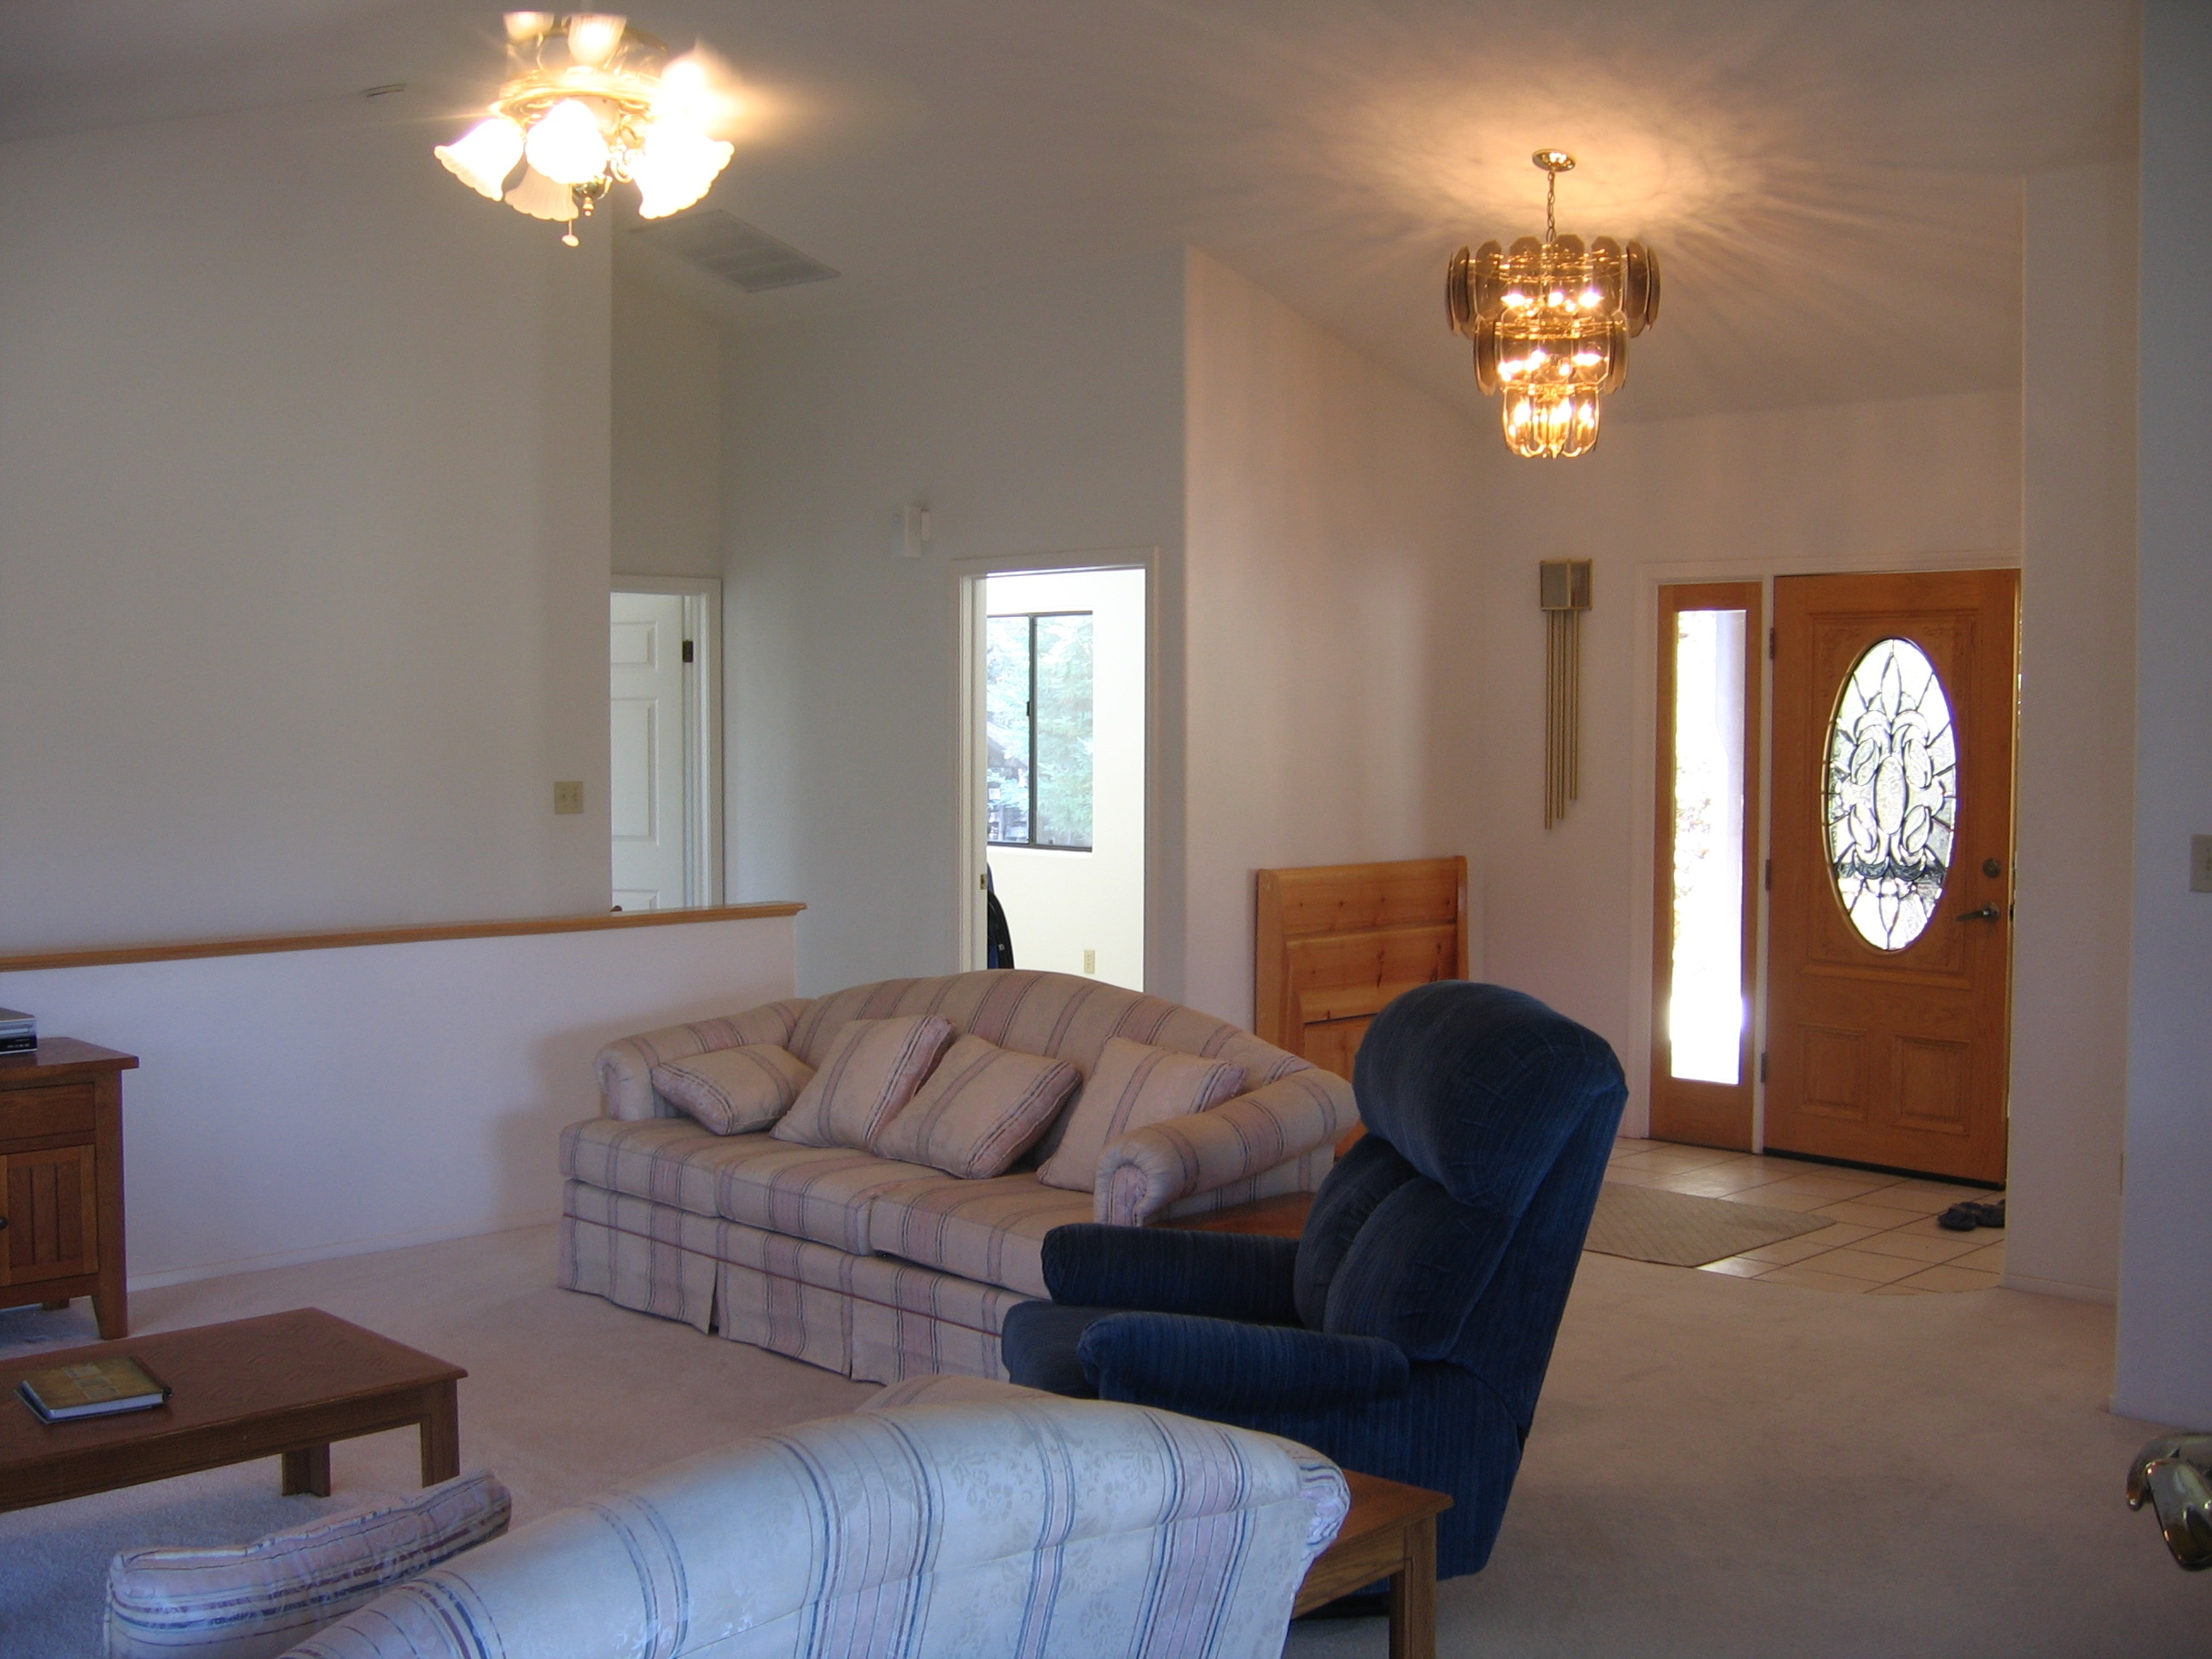 Logger 39 s retreat family vacation home info - Living room with front entry ...